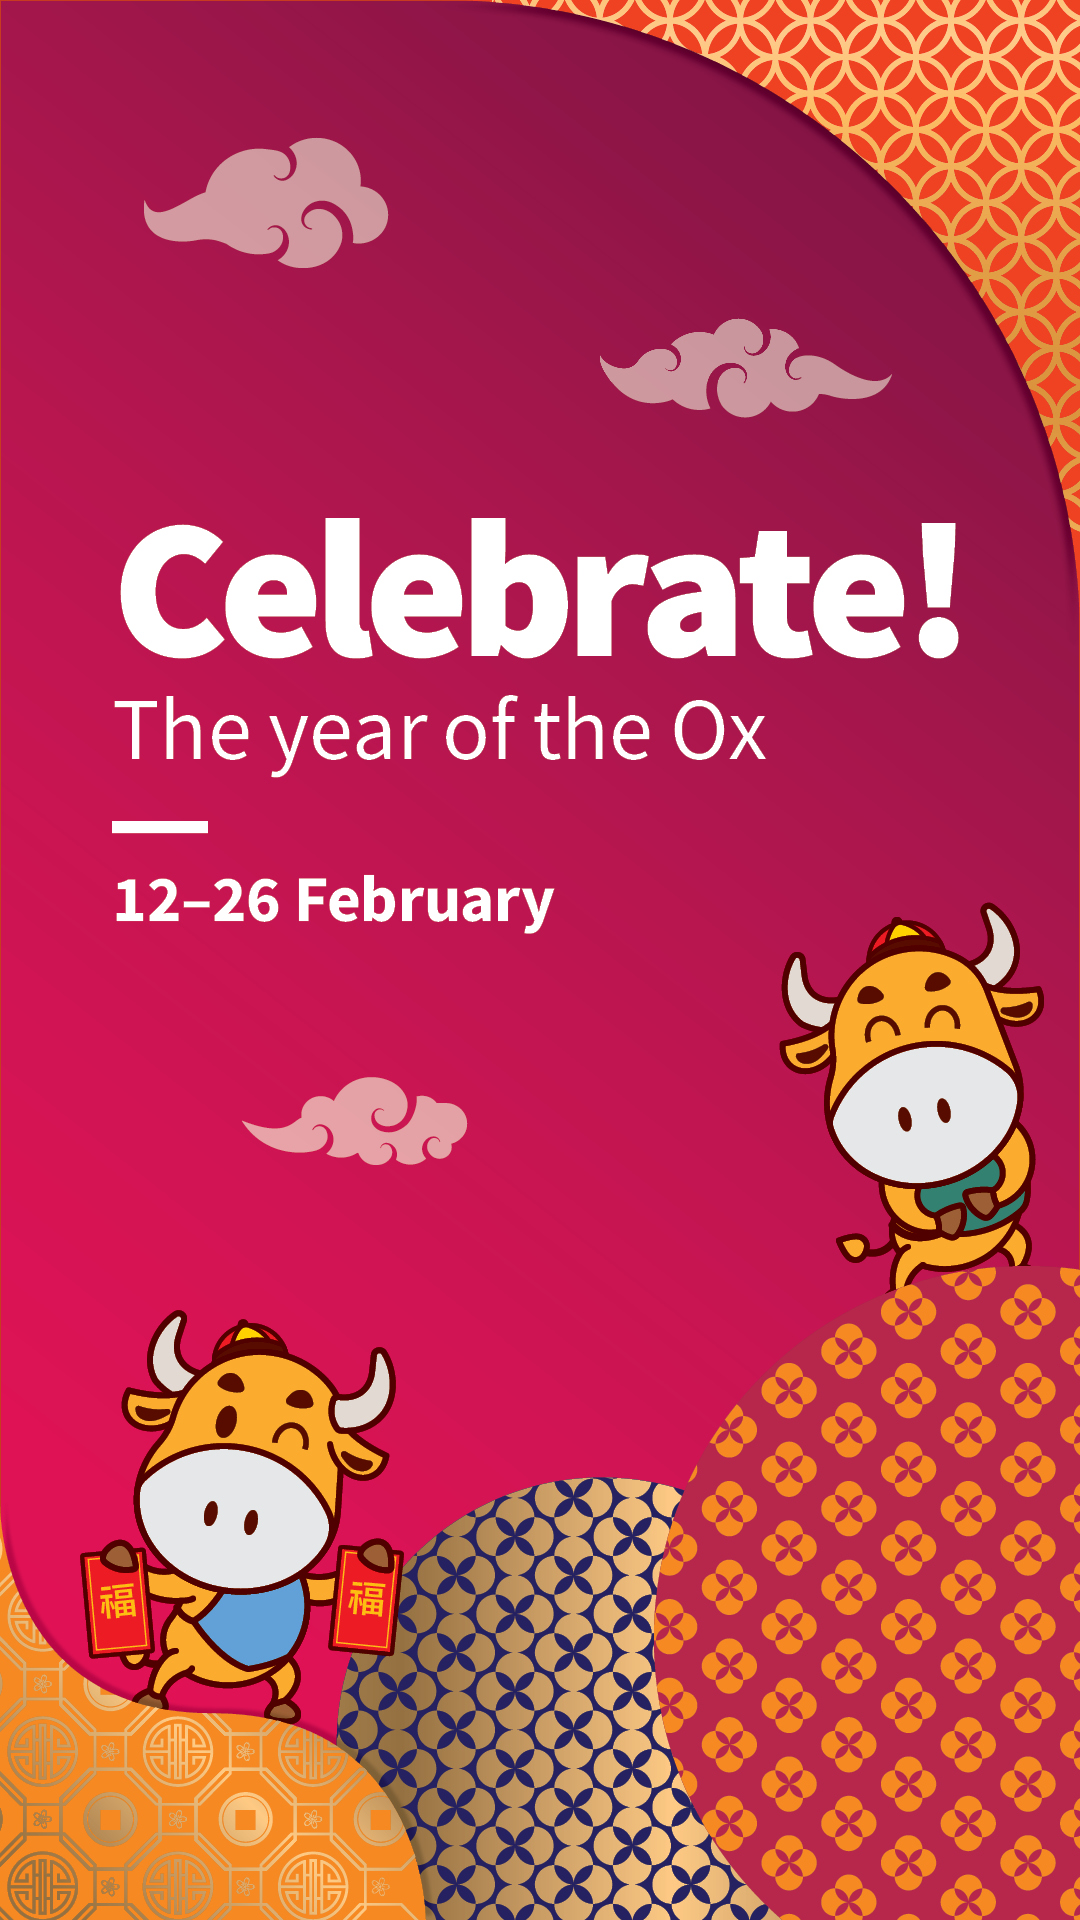 Image featuring cartoon oxes, text reads: Celebrate! The year of the Ox / 12-26 February